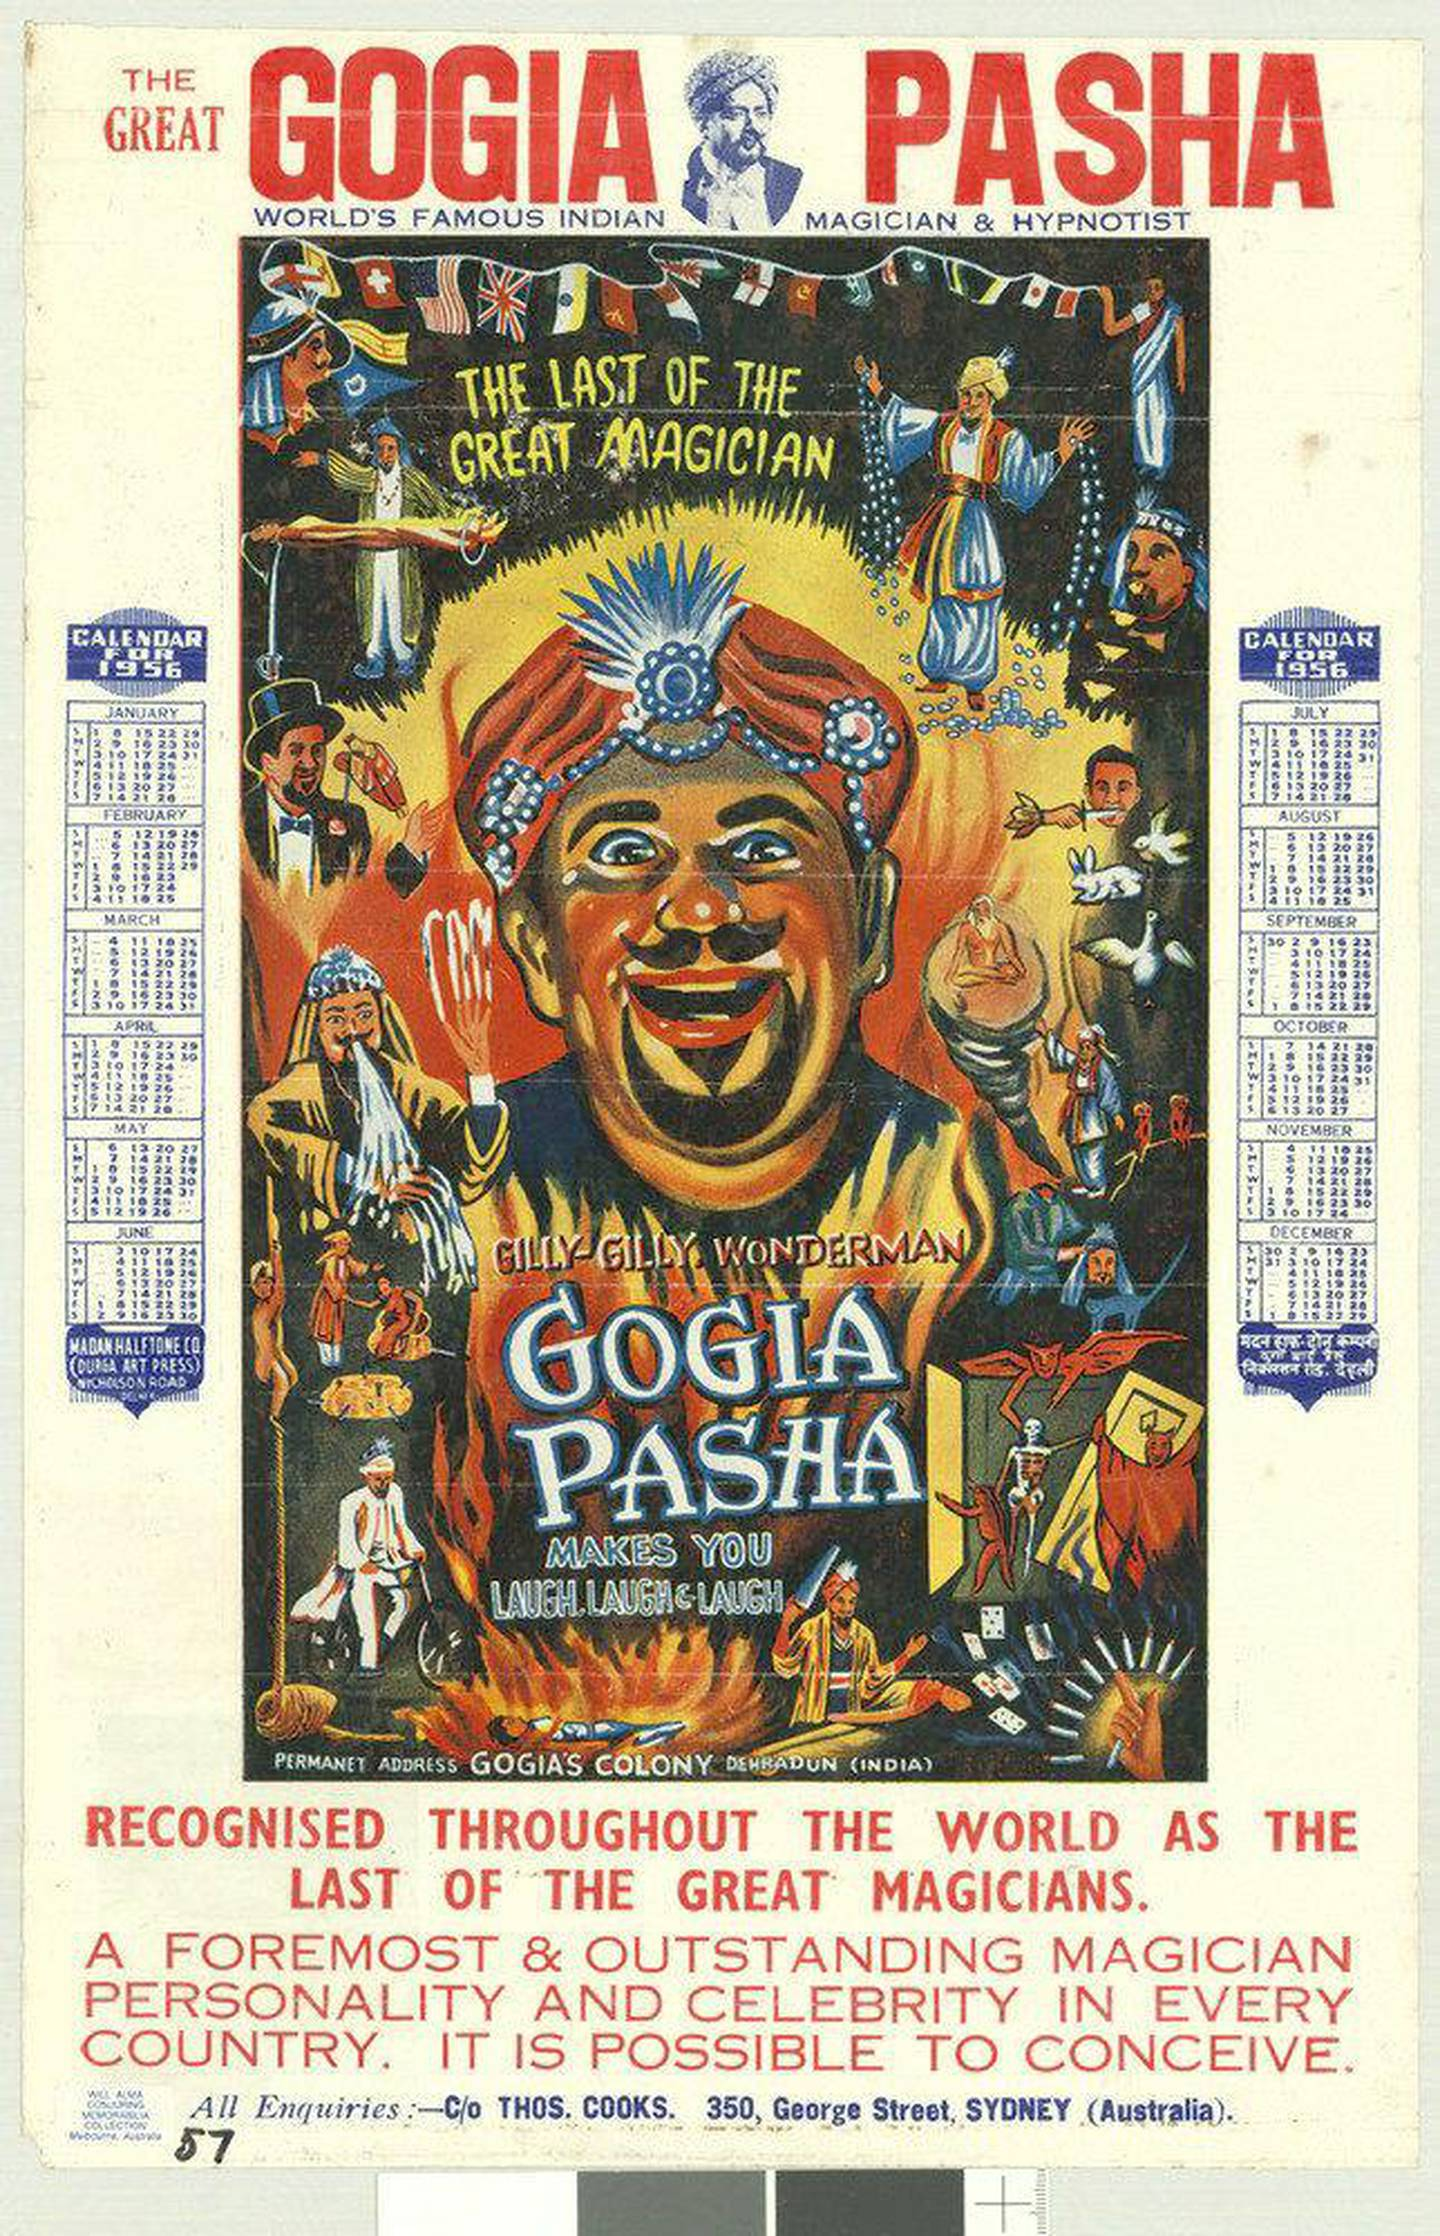 Publicity calendar for the 1956 Australian tour of Gogia Pasha, 'The last of the great magicians' (Alma Collection, State Library of Victoria) photo_credit Nicolas Zubrzycki